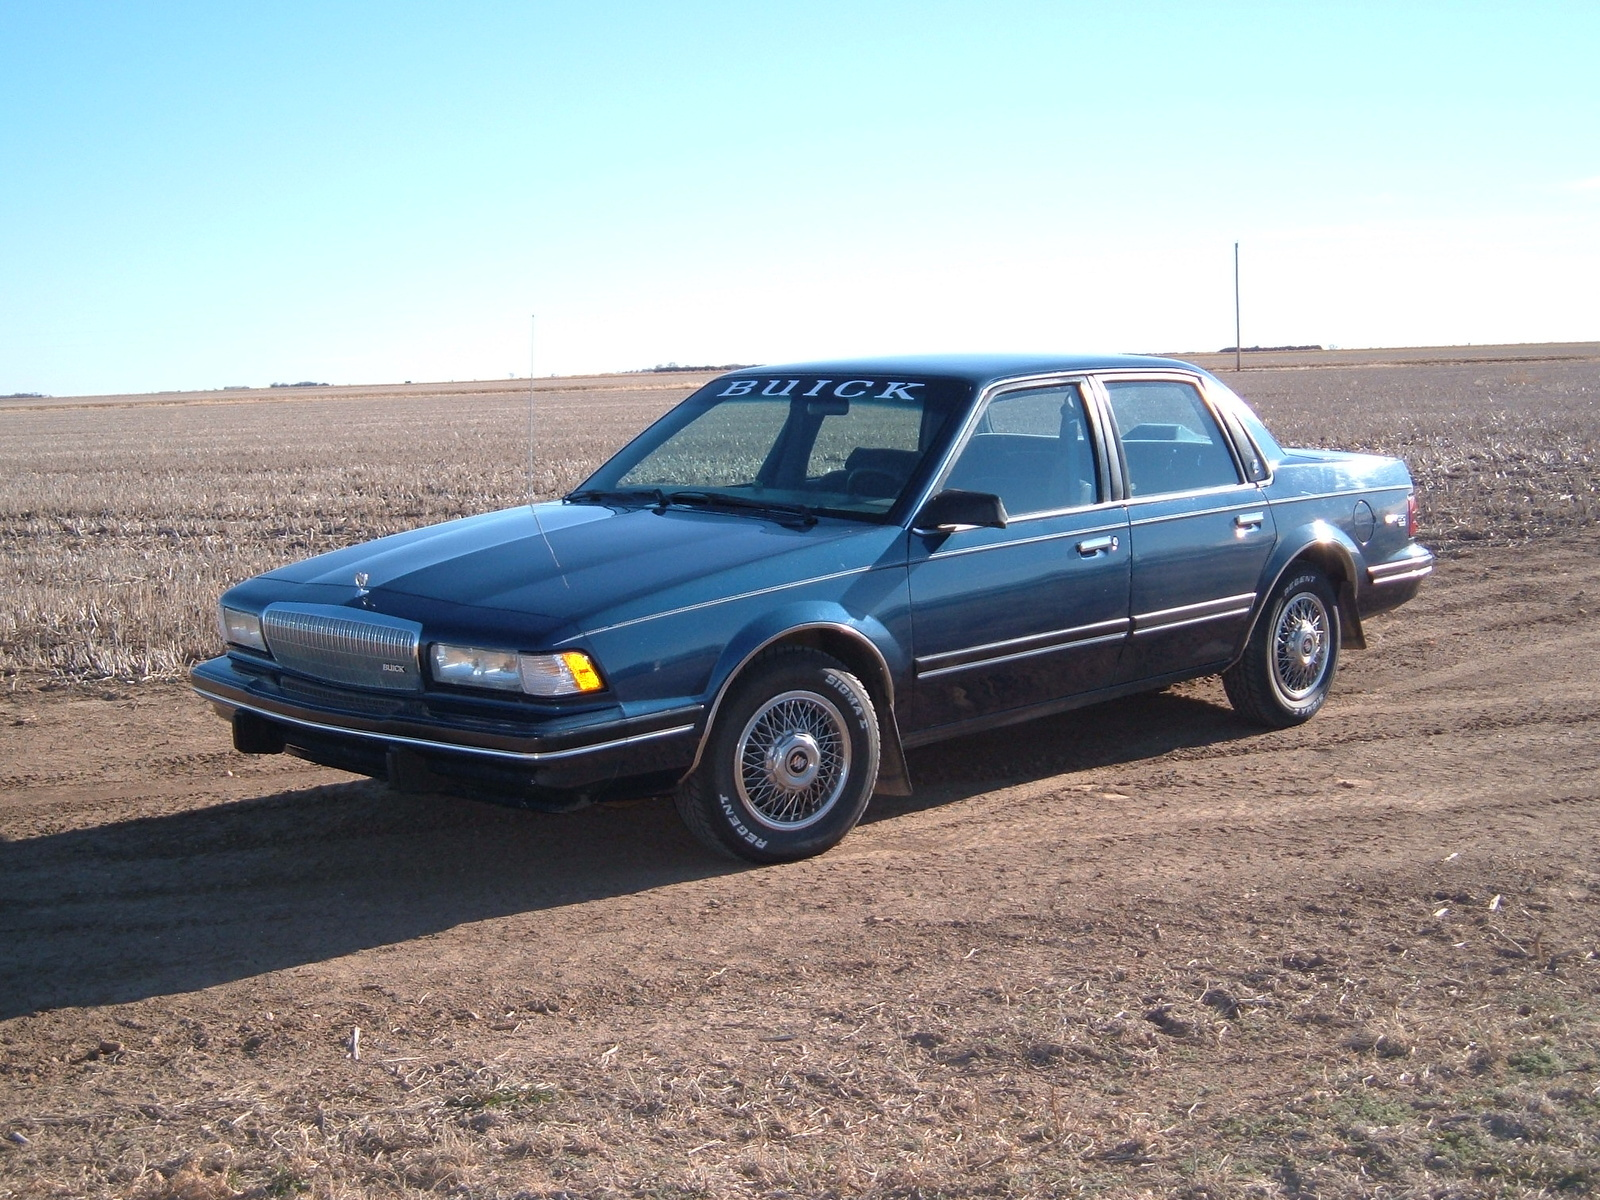 1991 Buick Century Information And Photos Zombiedrive